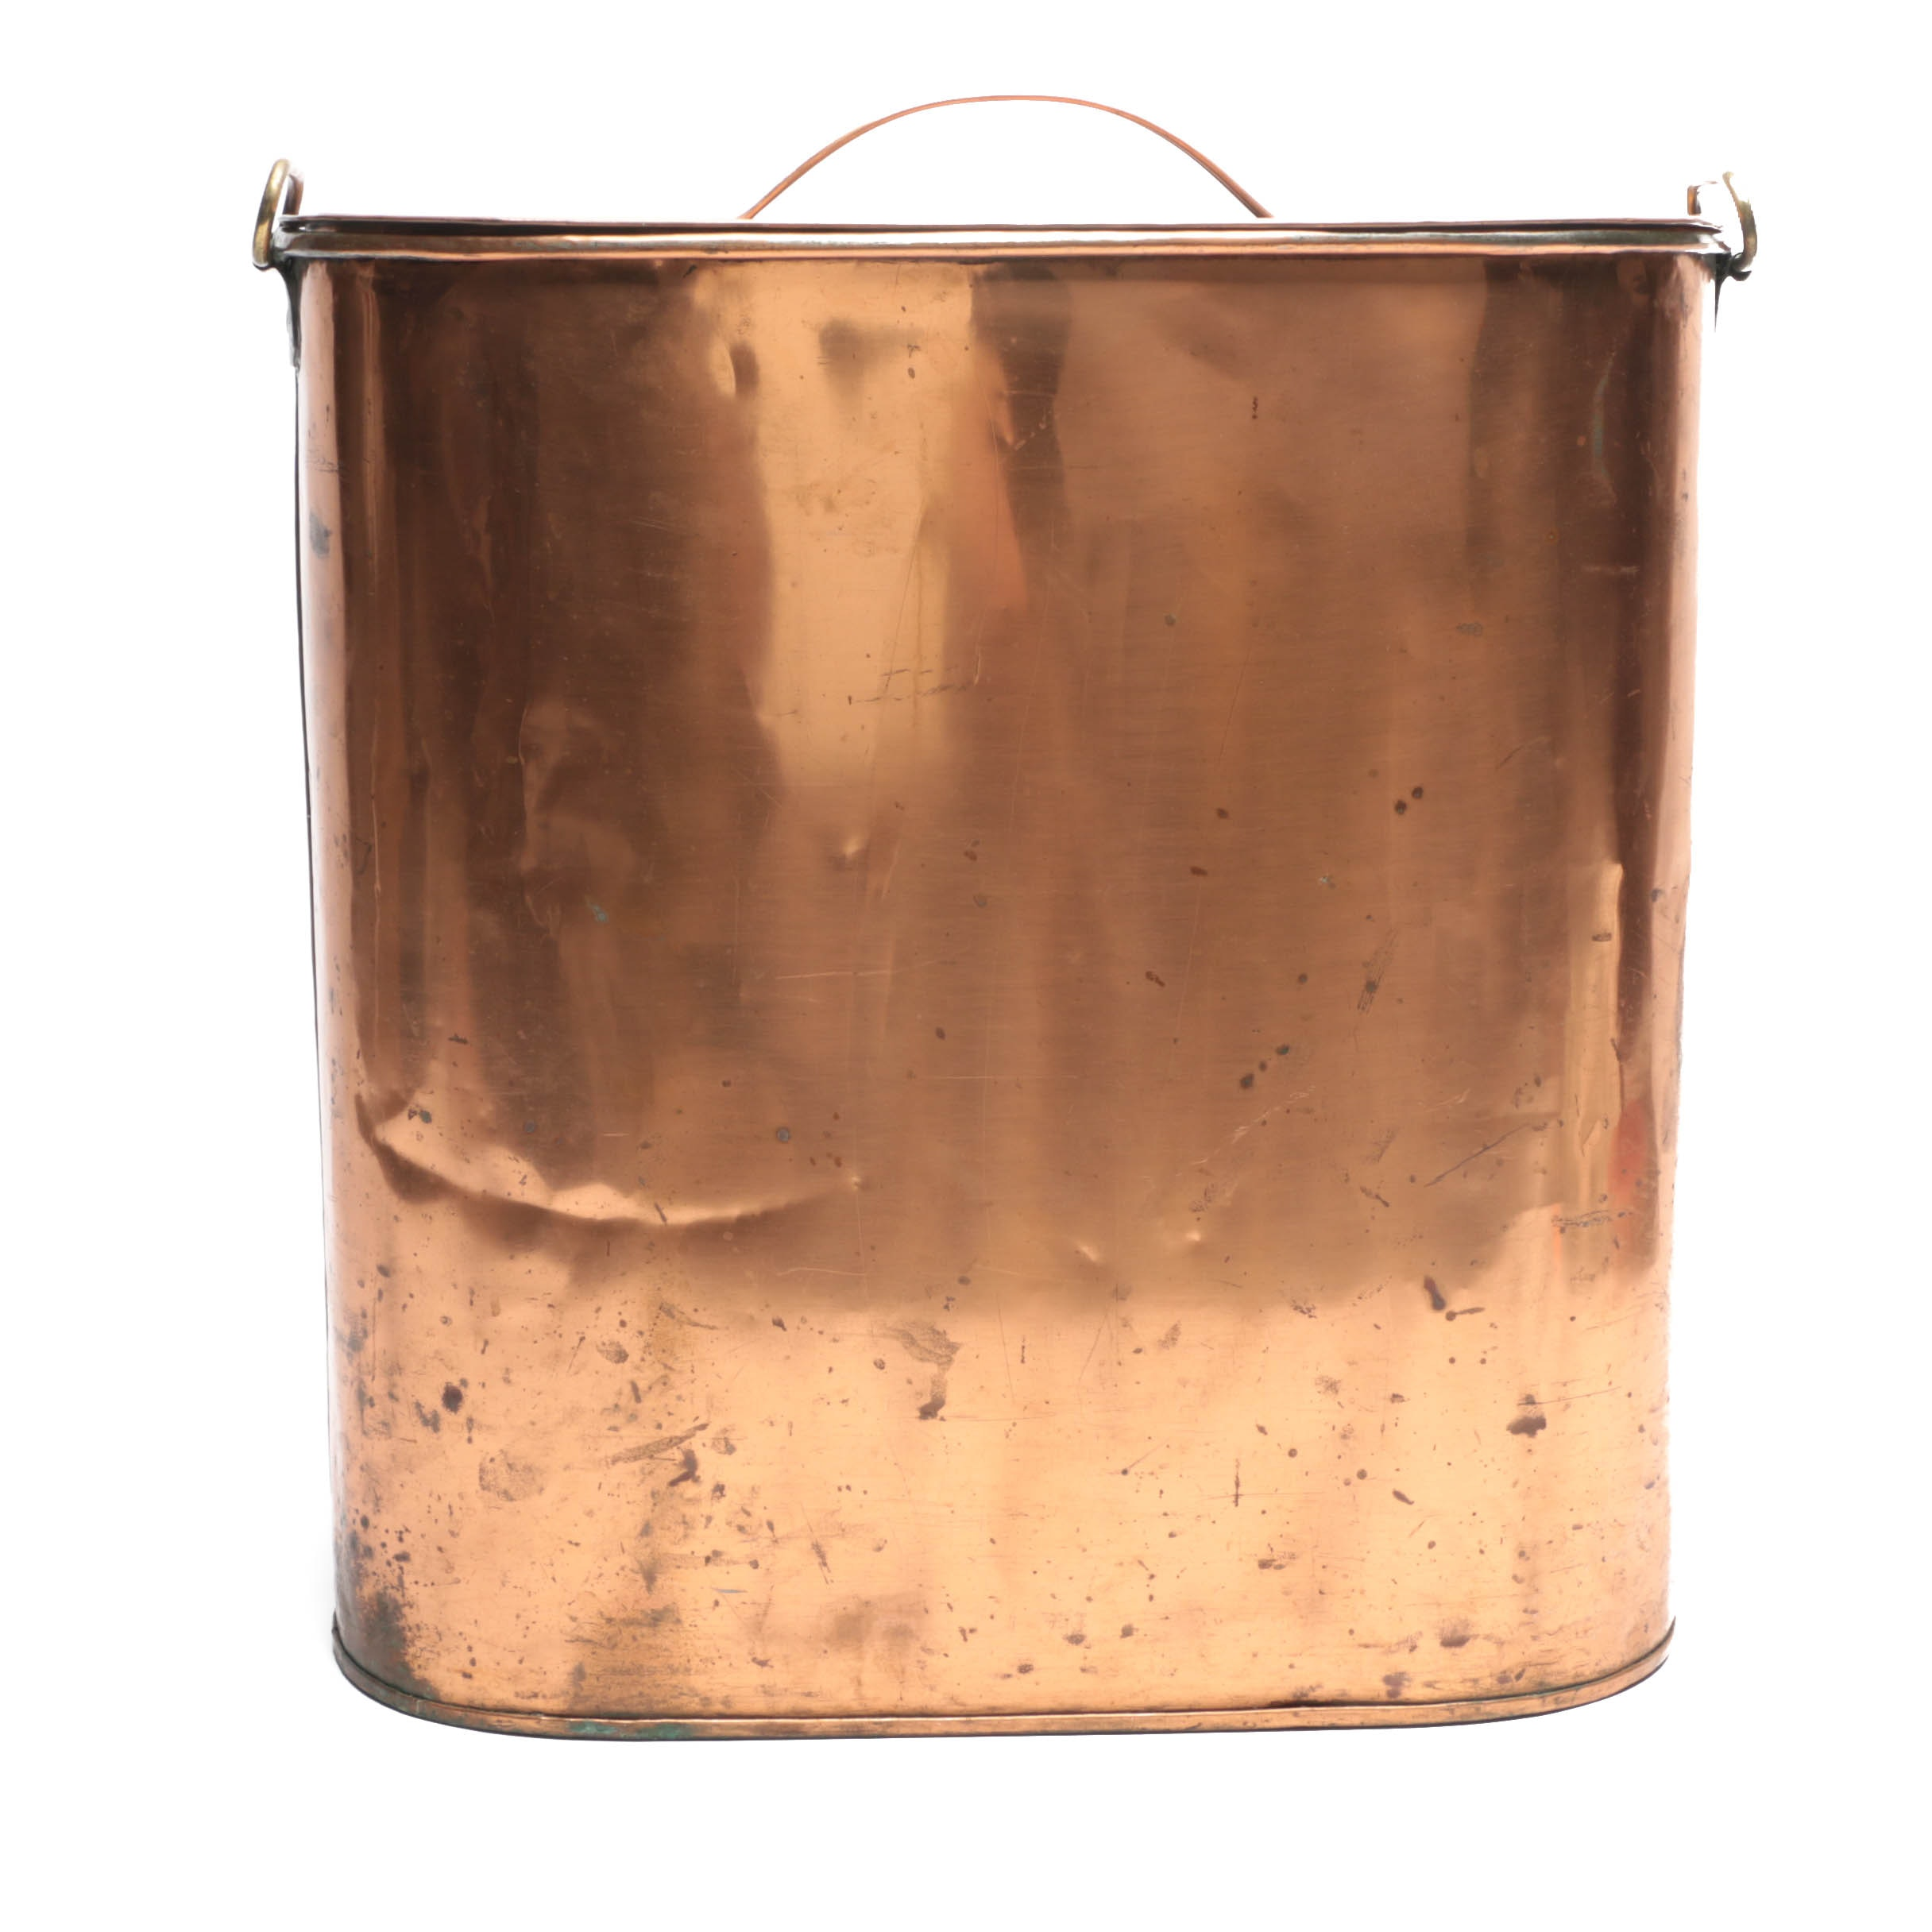 Zinc and Copper Finish Canister